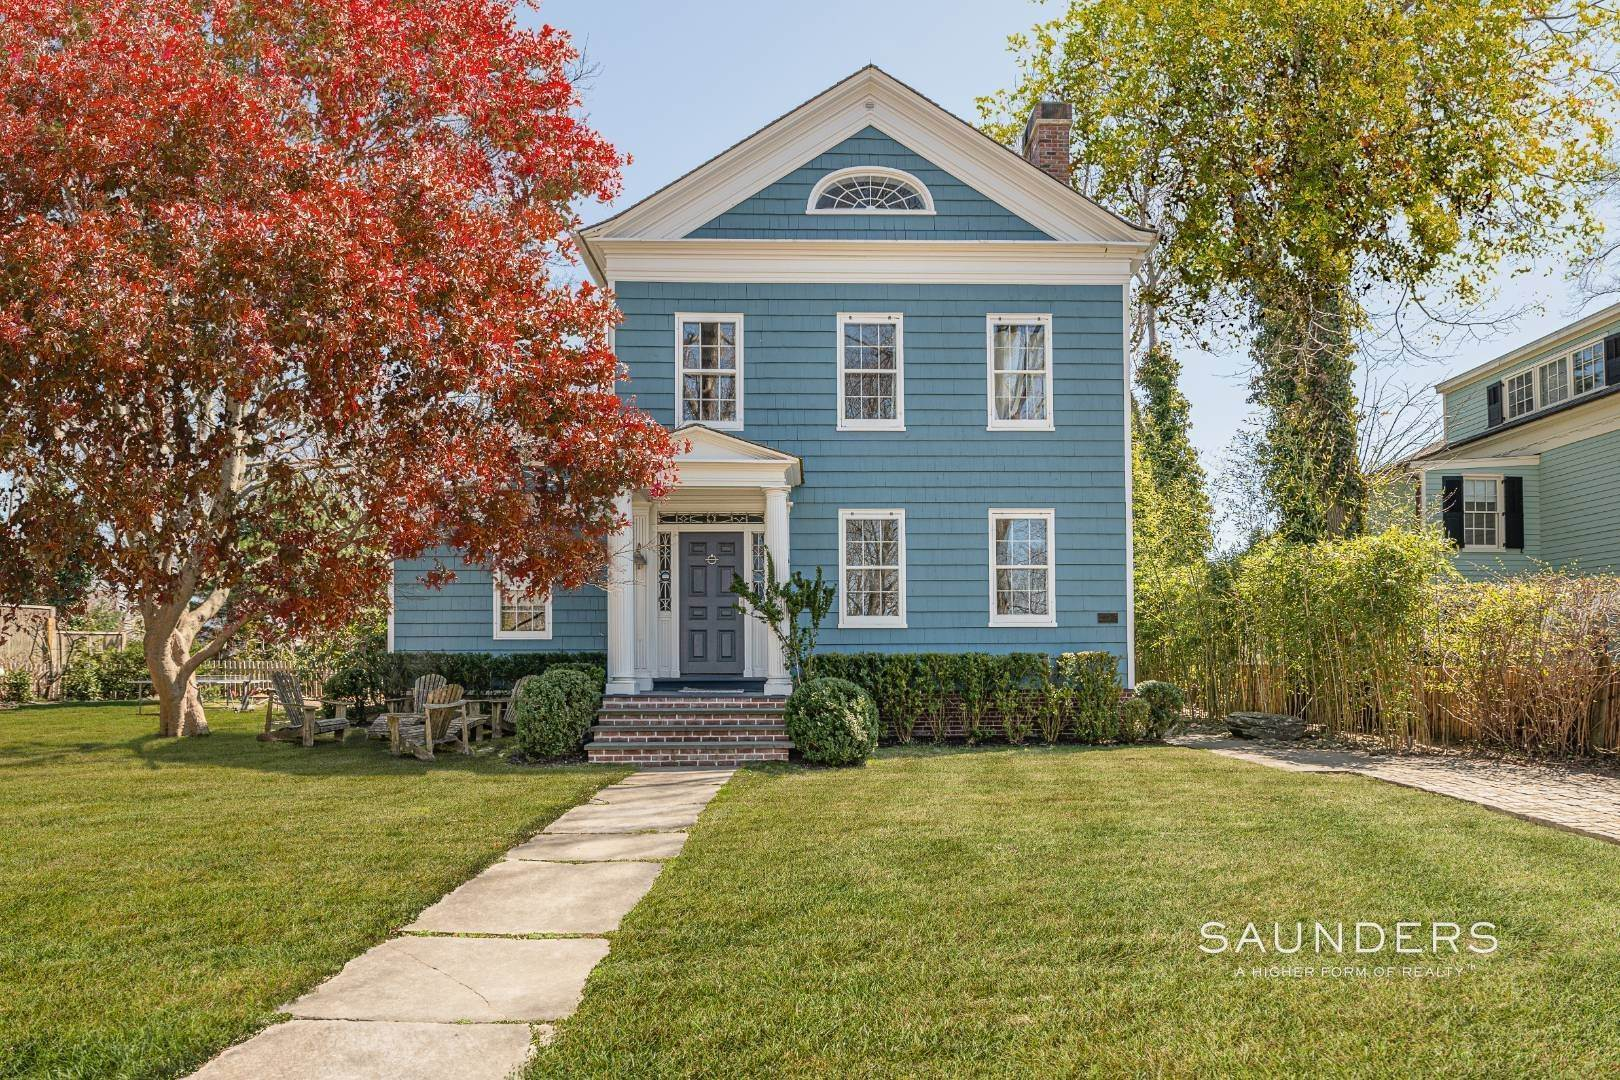 Single Family Homes for Sale at 1+ Acre Historic District Offering 10 High Street, Sag Harbor, East Hampton Town, NY 11963